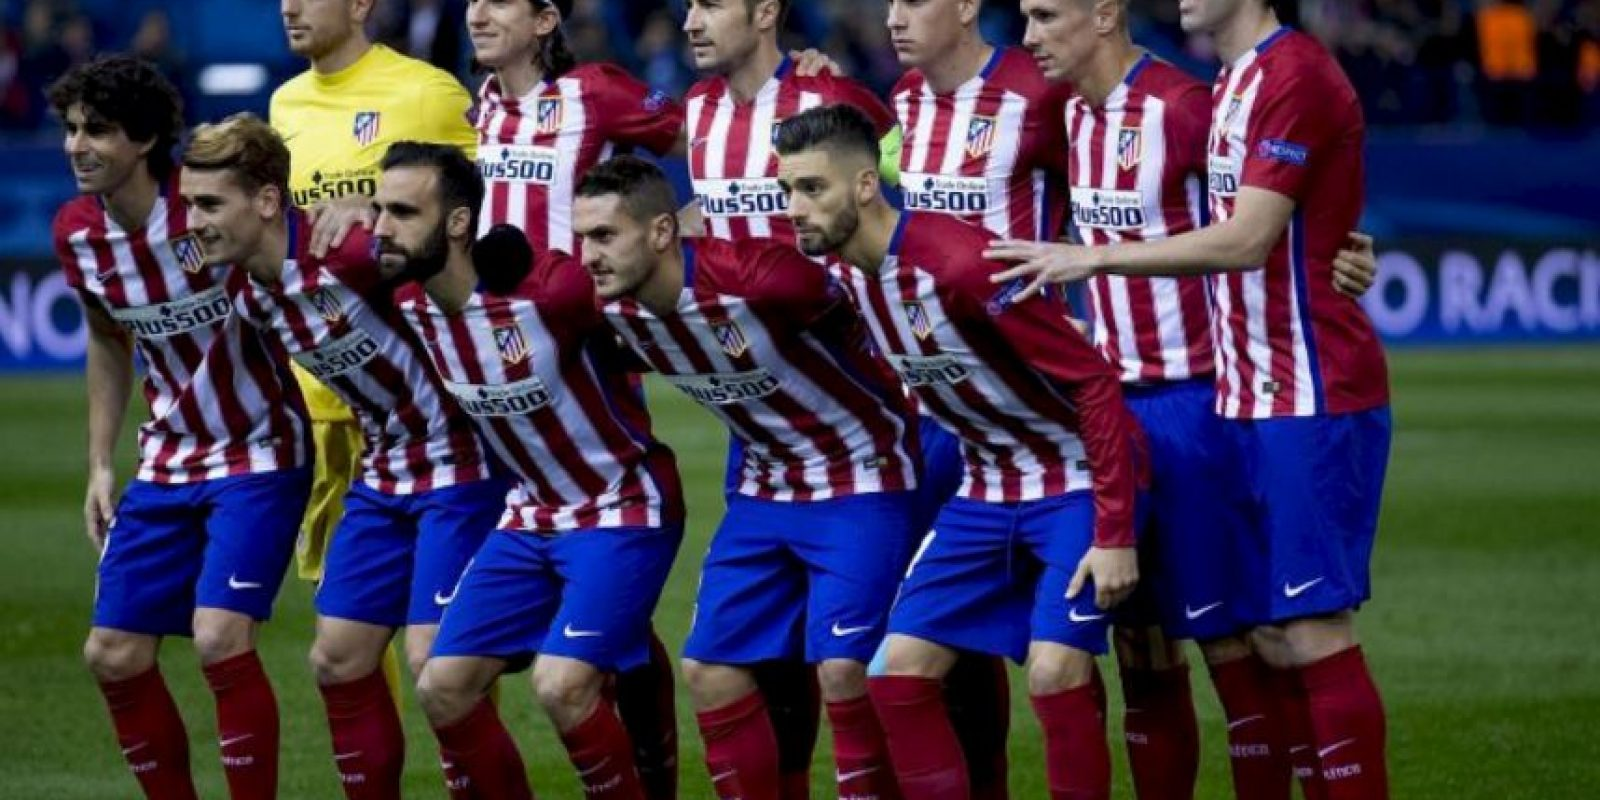 5. Atlético de Madrid Foto: Getty Images